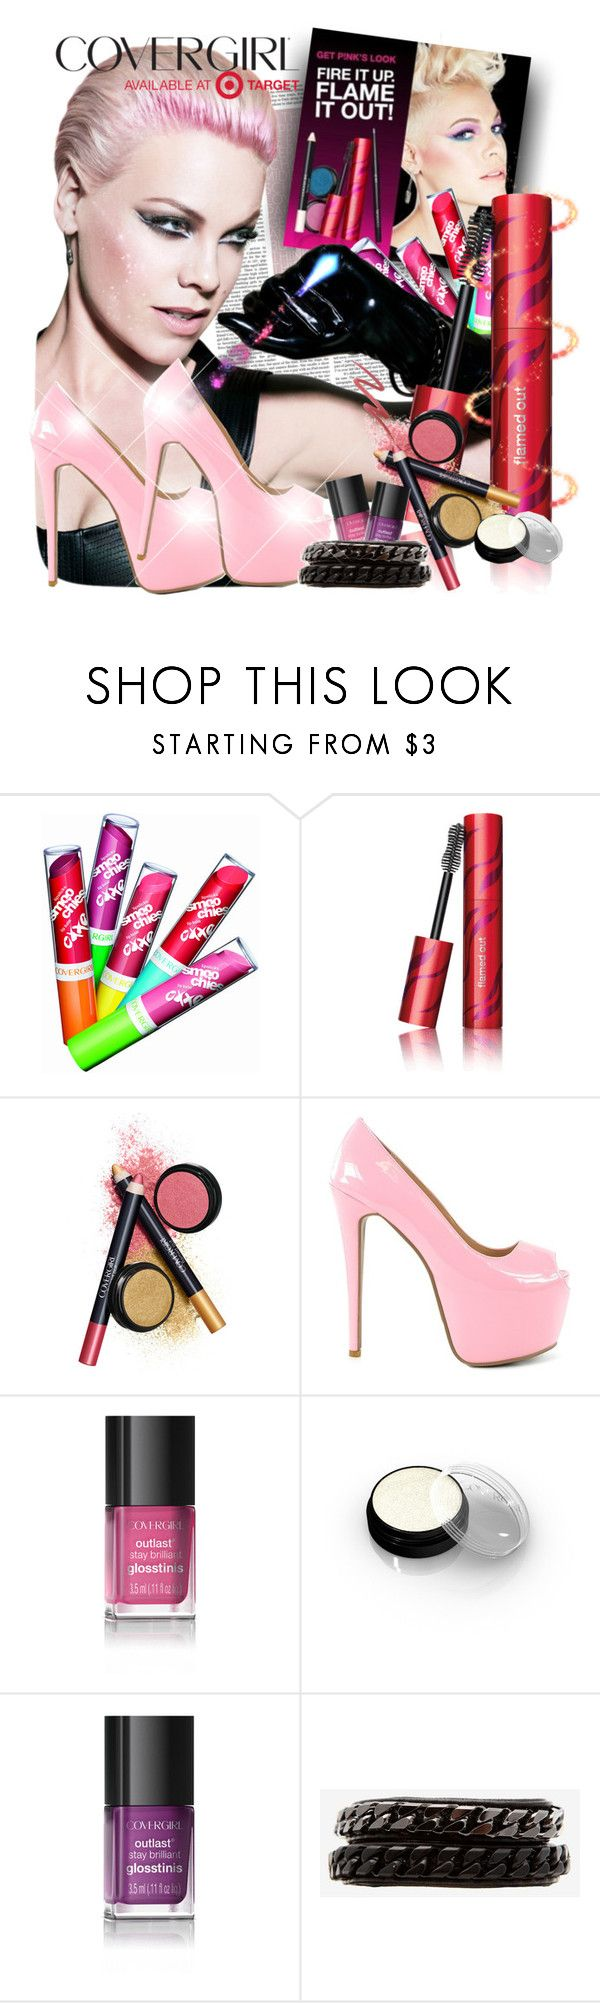 """Covergirl Flamed Out Bold"" by hellobrit ❤ liked on Polyvore featuring COVERGIRL, Nly Shoes, Vita Fede, target and flamedoutbold"